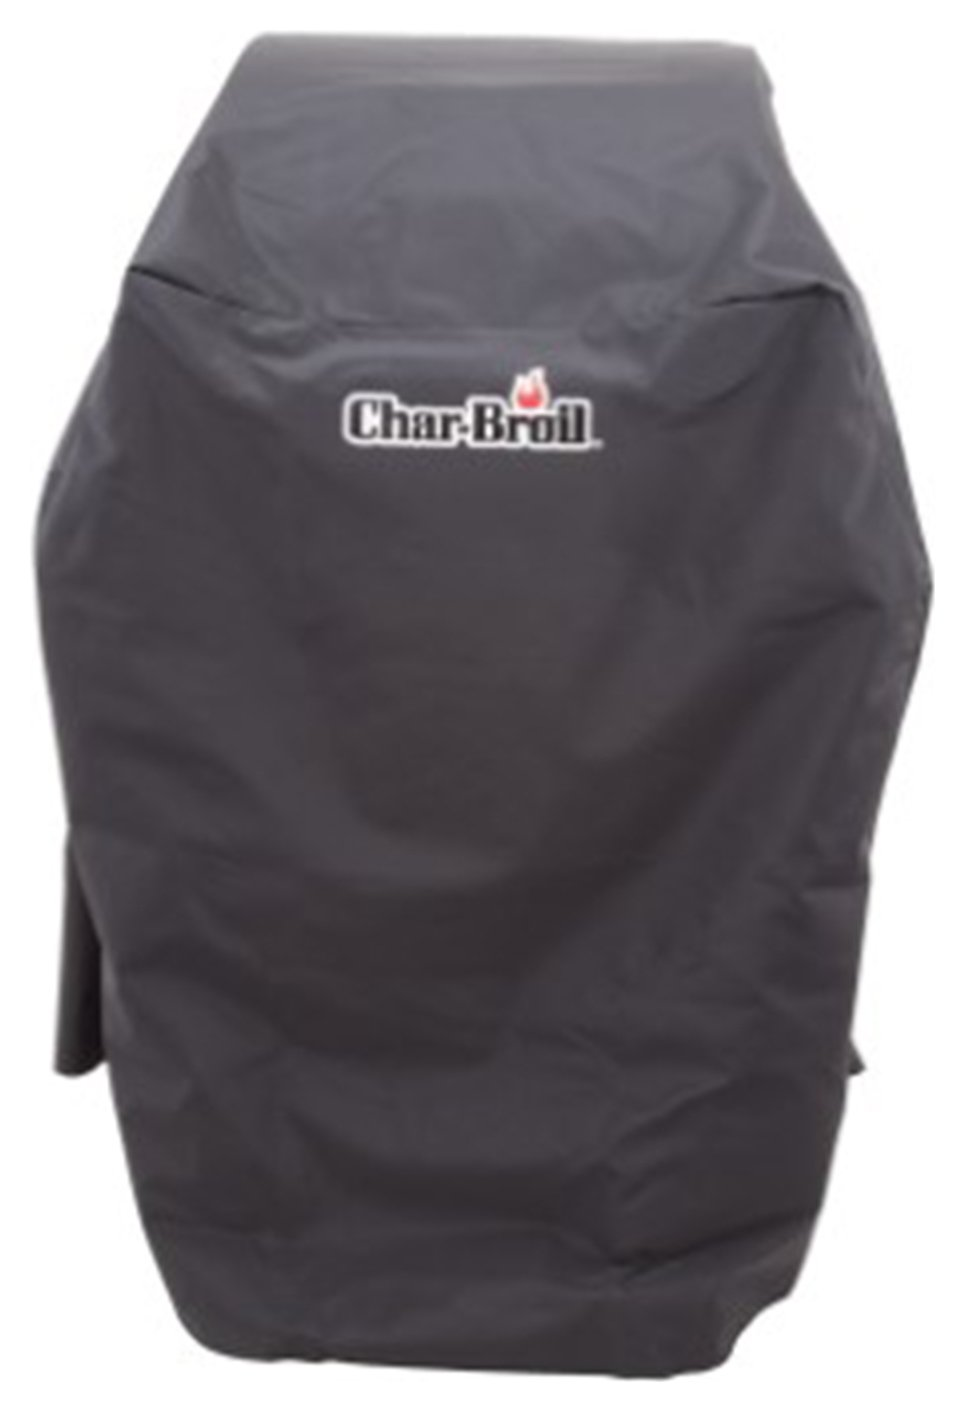 Char-Broil Performance T-22G Heavy Duty BBQ Cover. lowest price